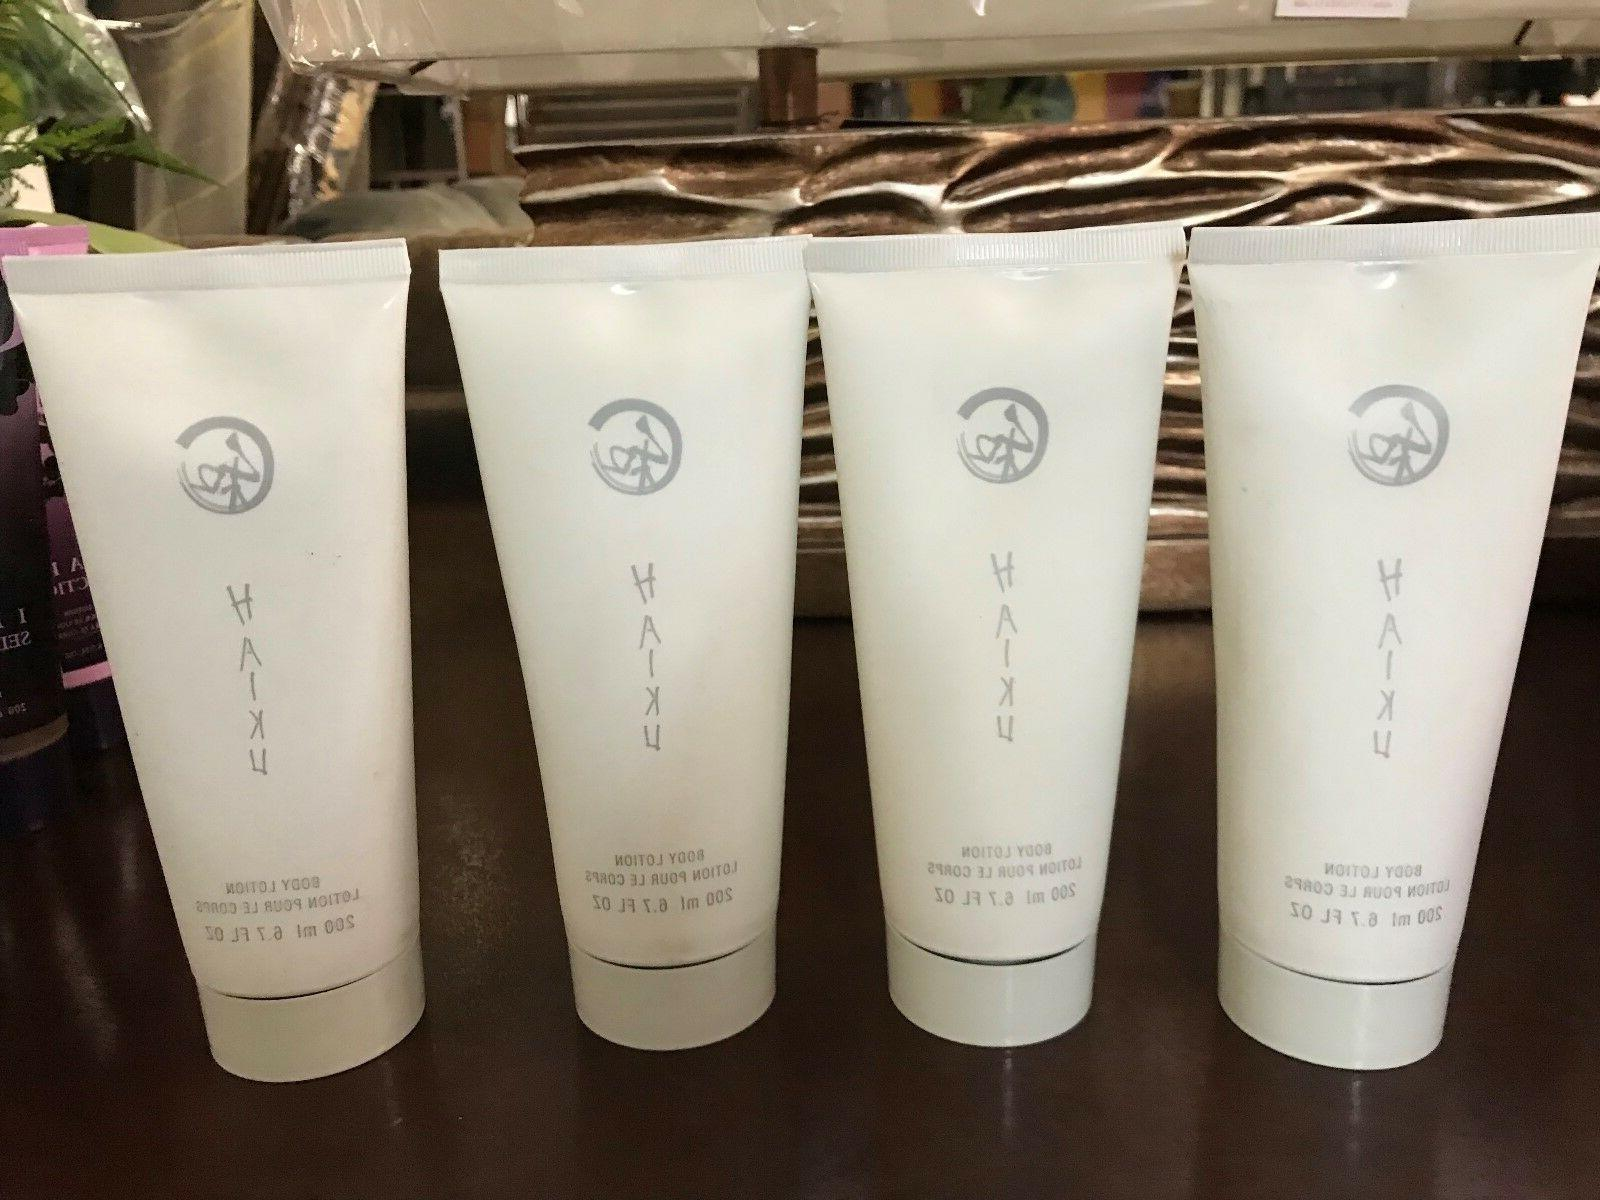 haiku body lotion 4 piece set